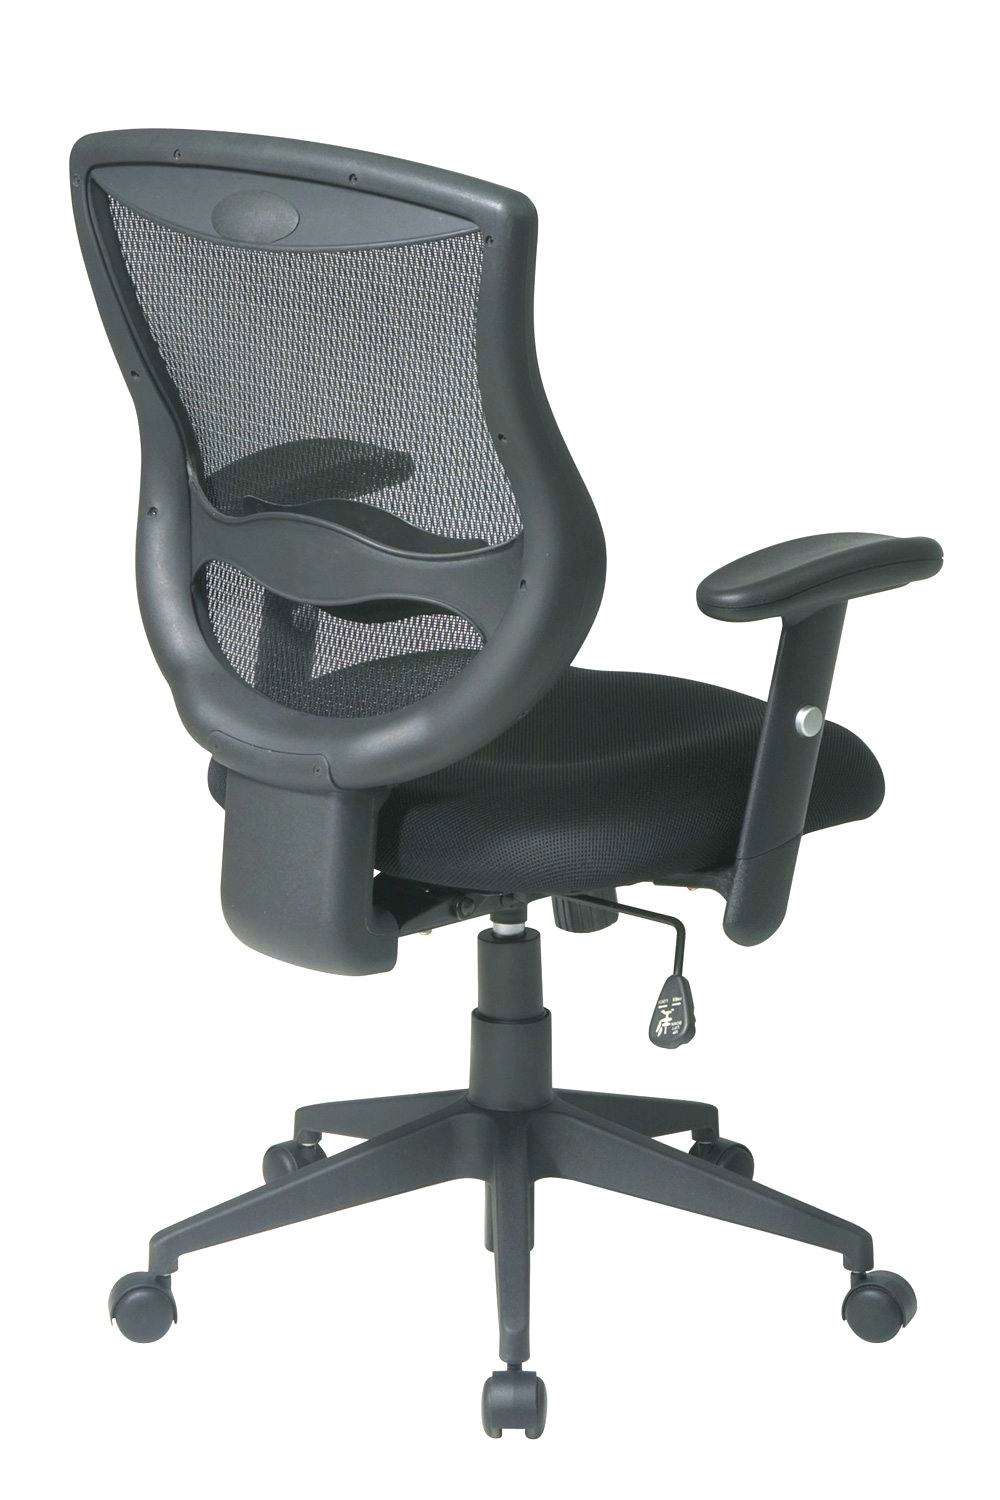 The Back Support For Office Chair Staples Design Home Design with size 1000 X 1500